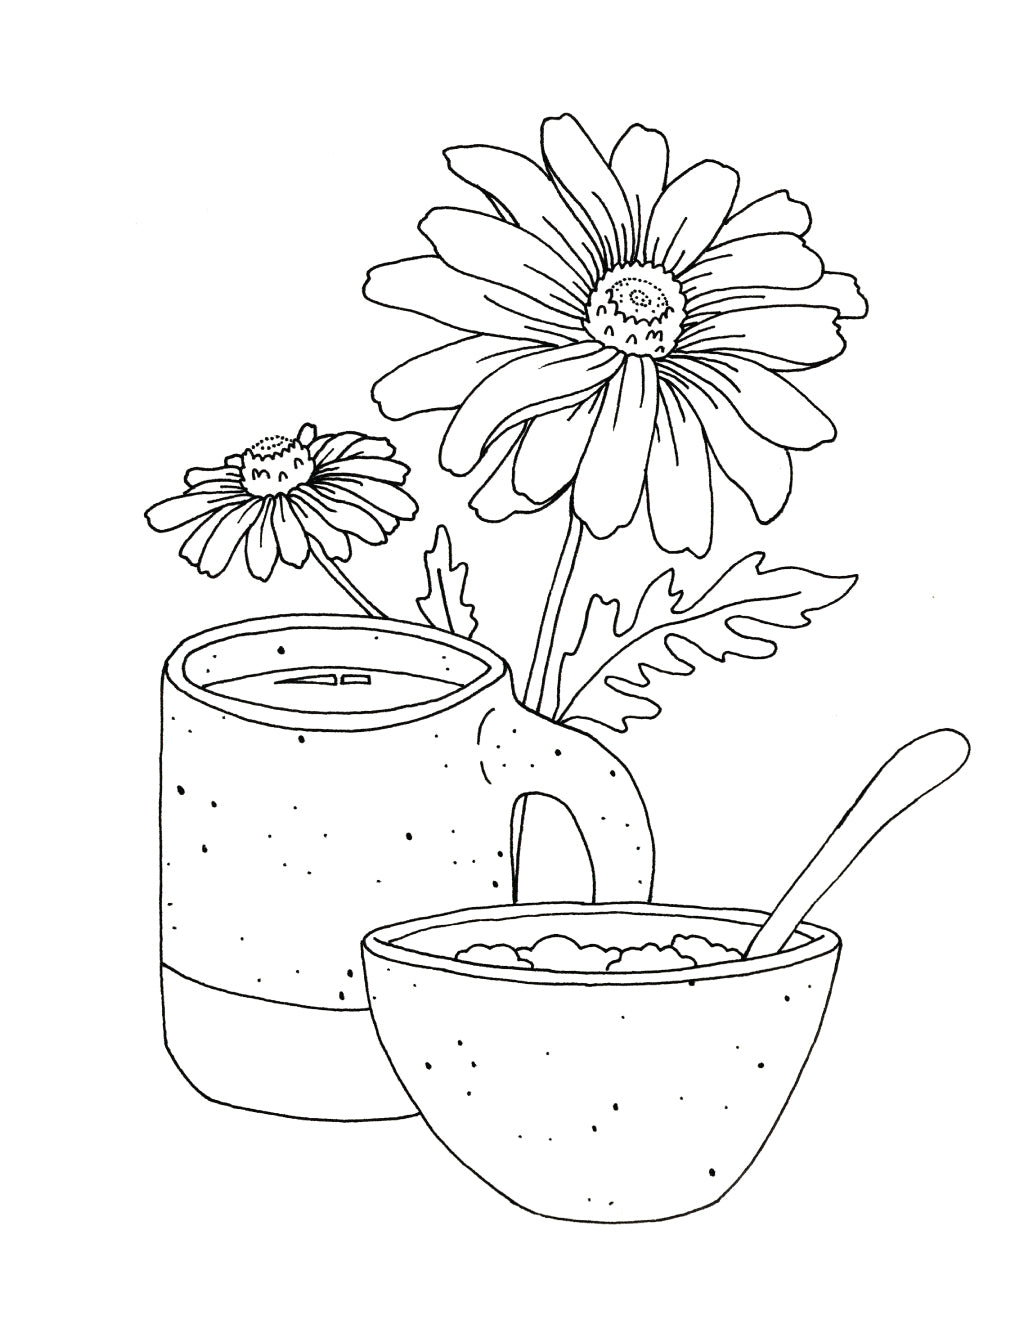 Birds Family On The Cherry Blossom Tree Coloring Page - Free ... | 1325x1024